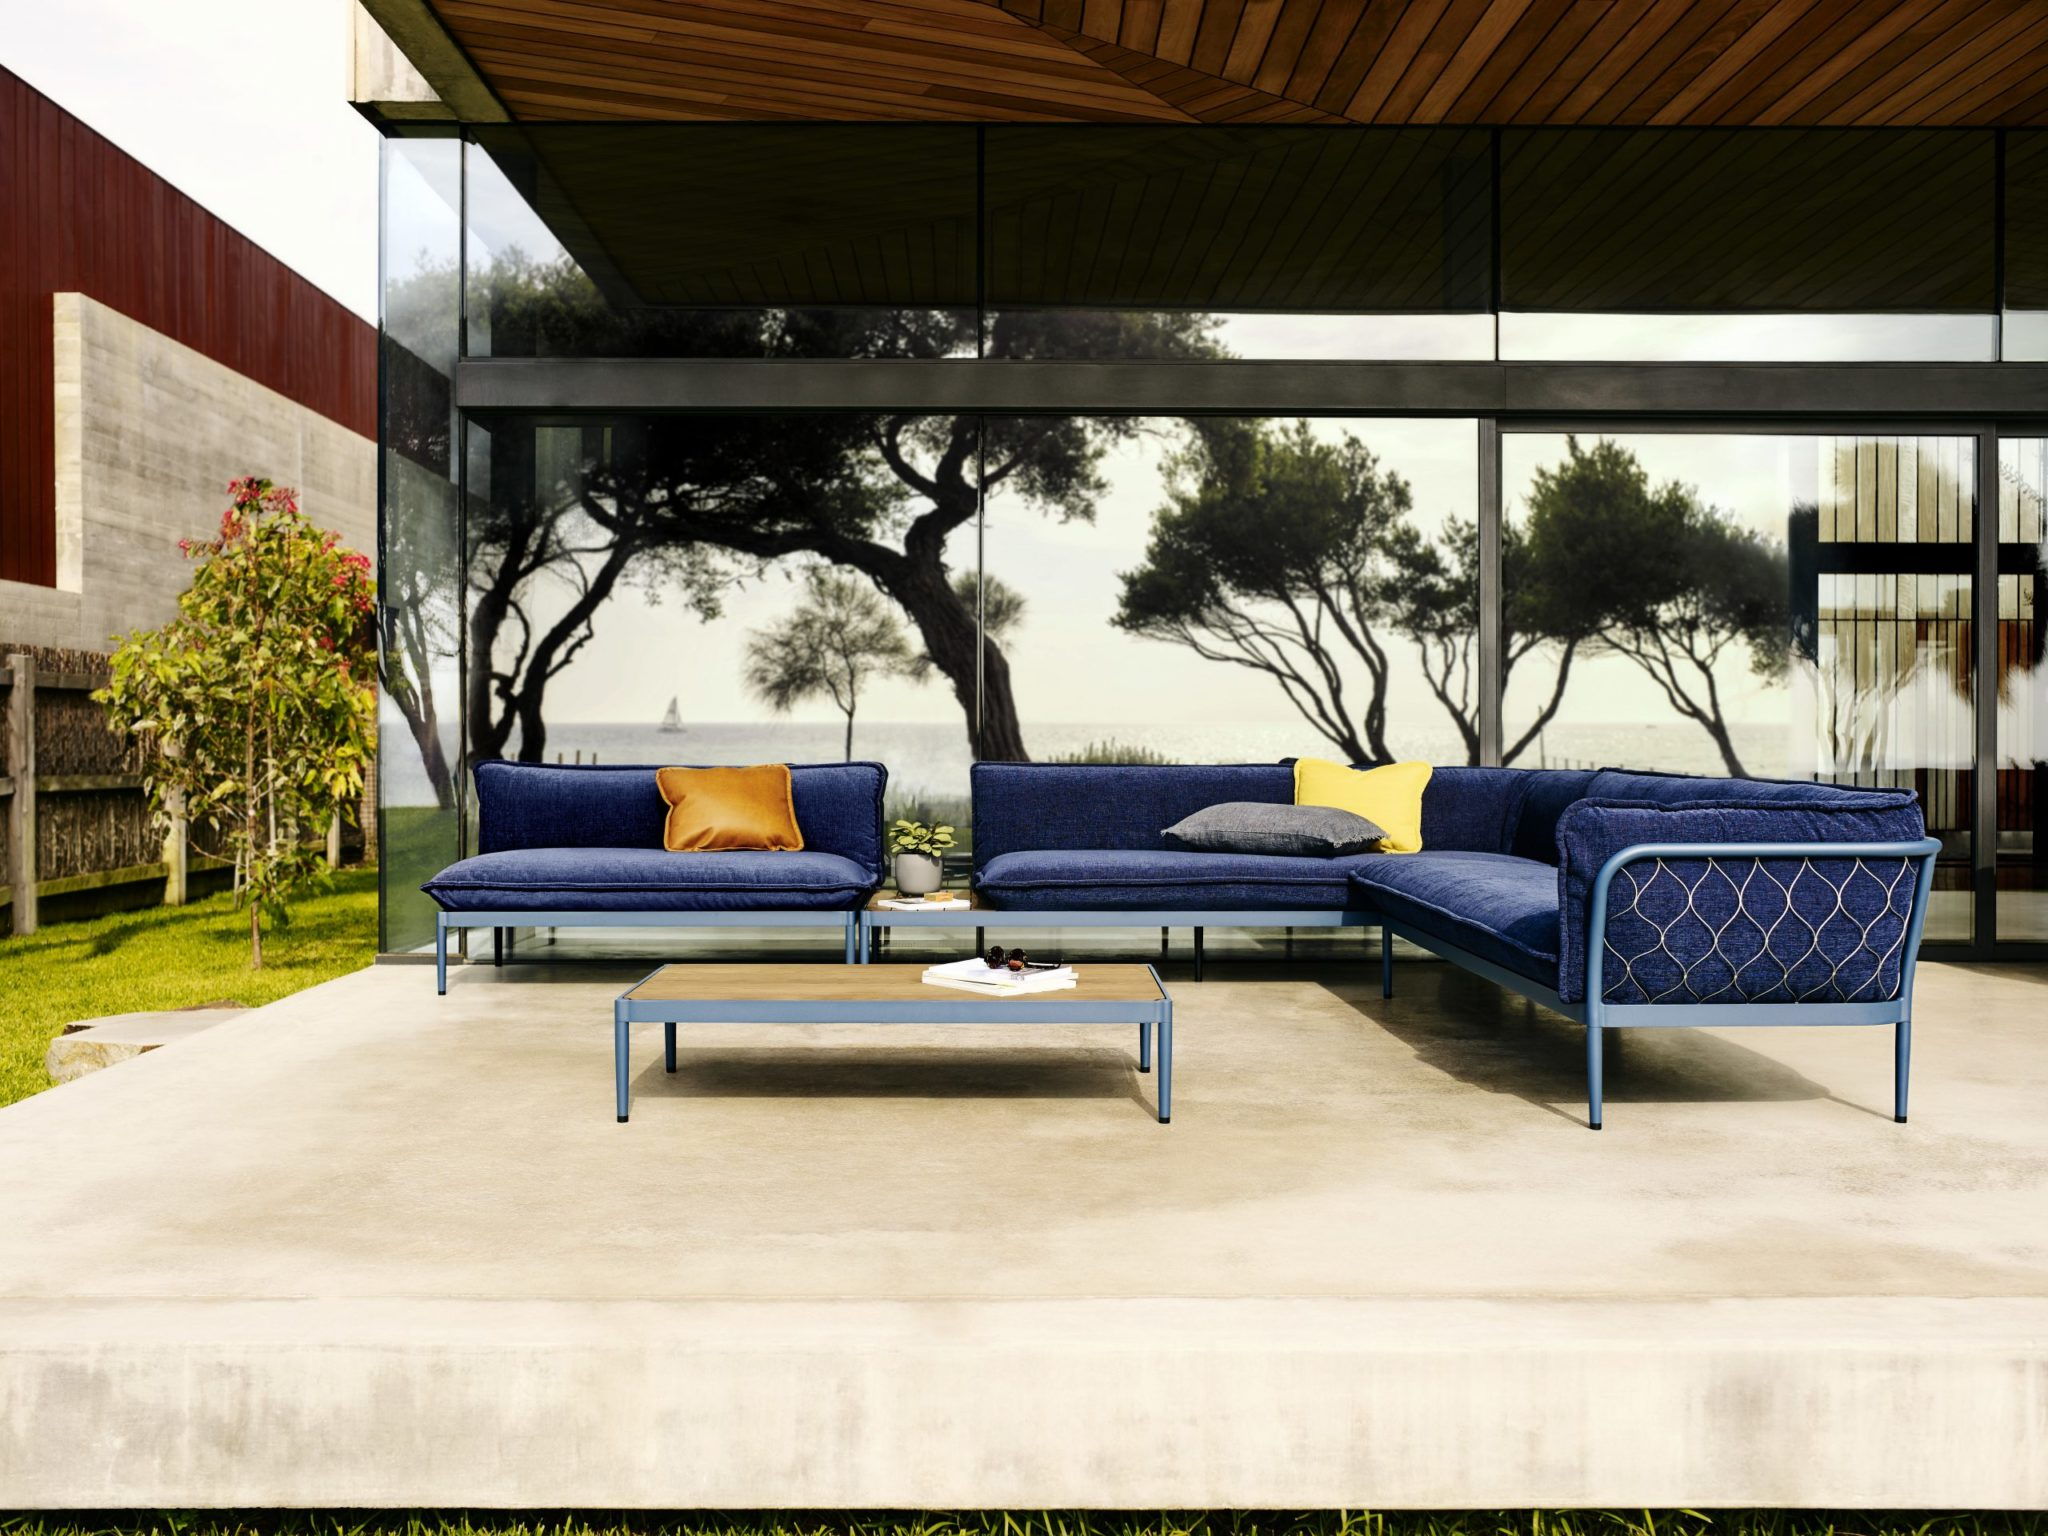 Luxury Outdoor Modular Lounge